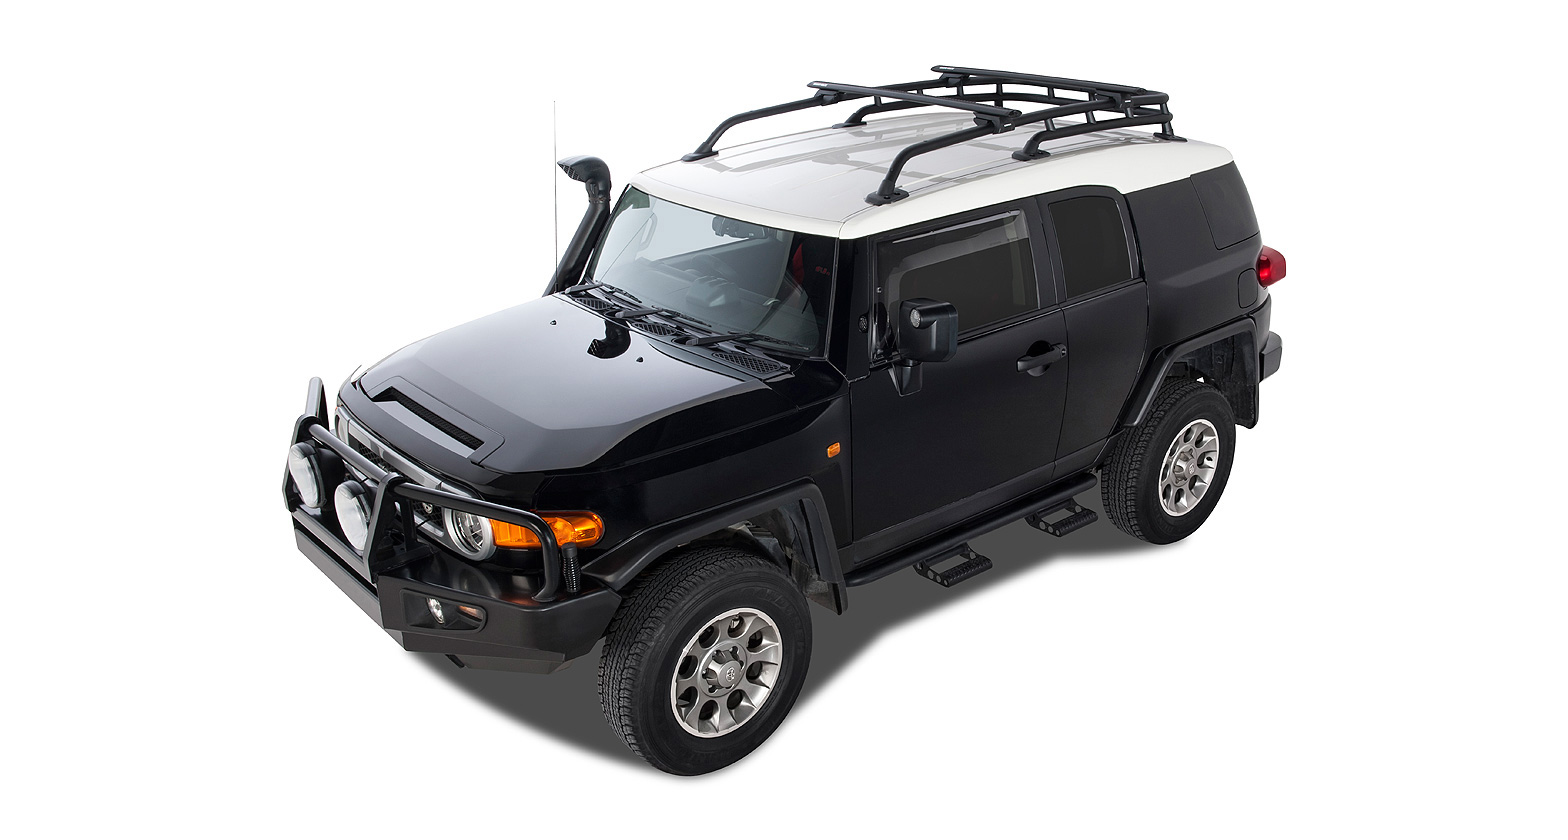 Rhino-Rack Vortex SX Black 2 Bar Roof Rack